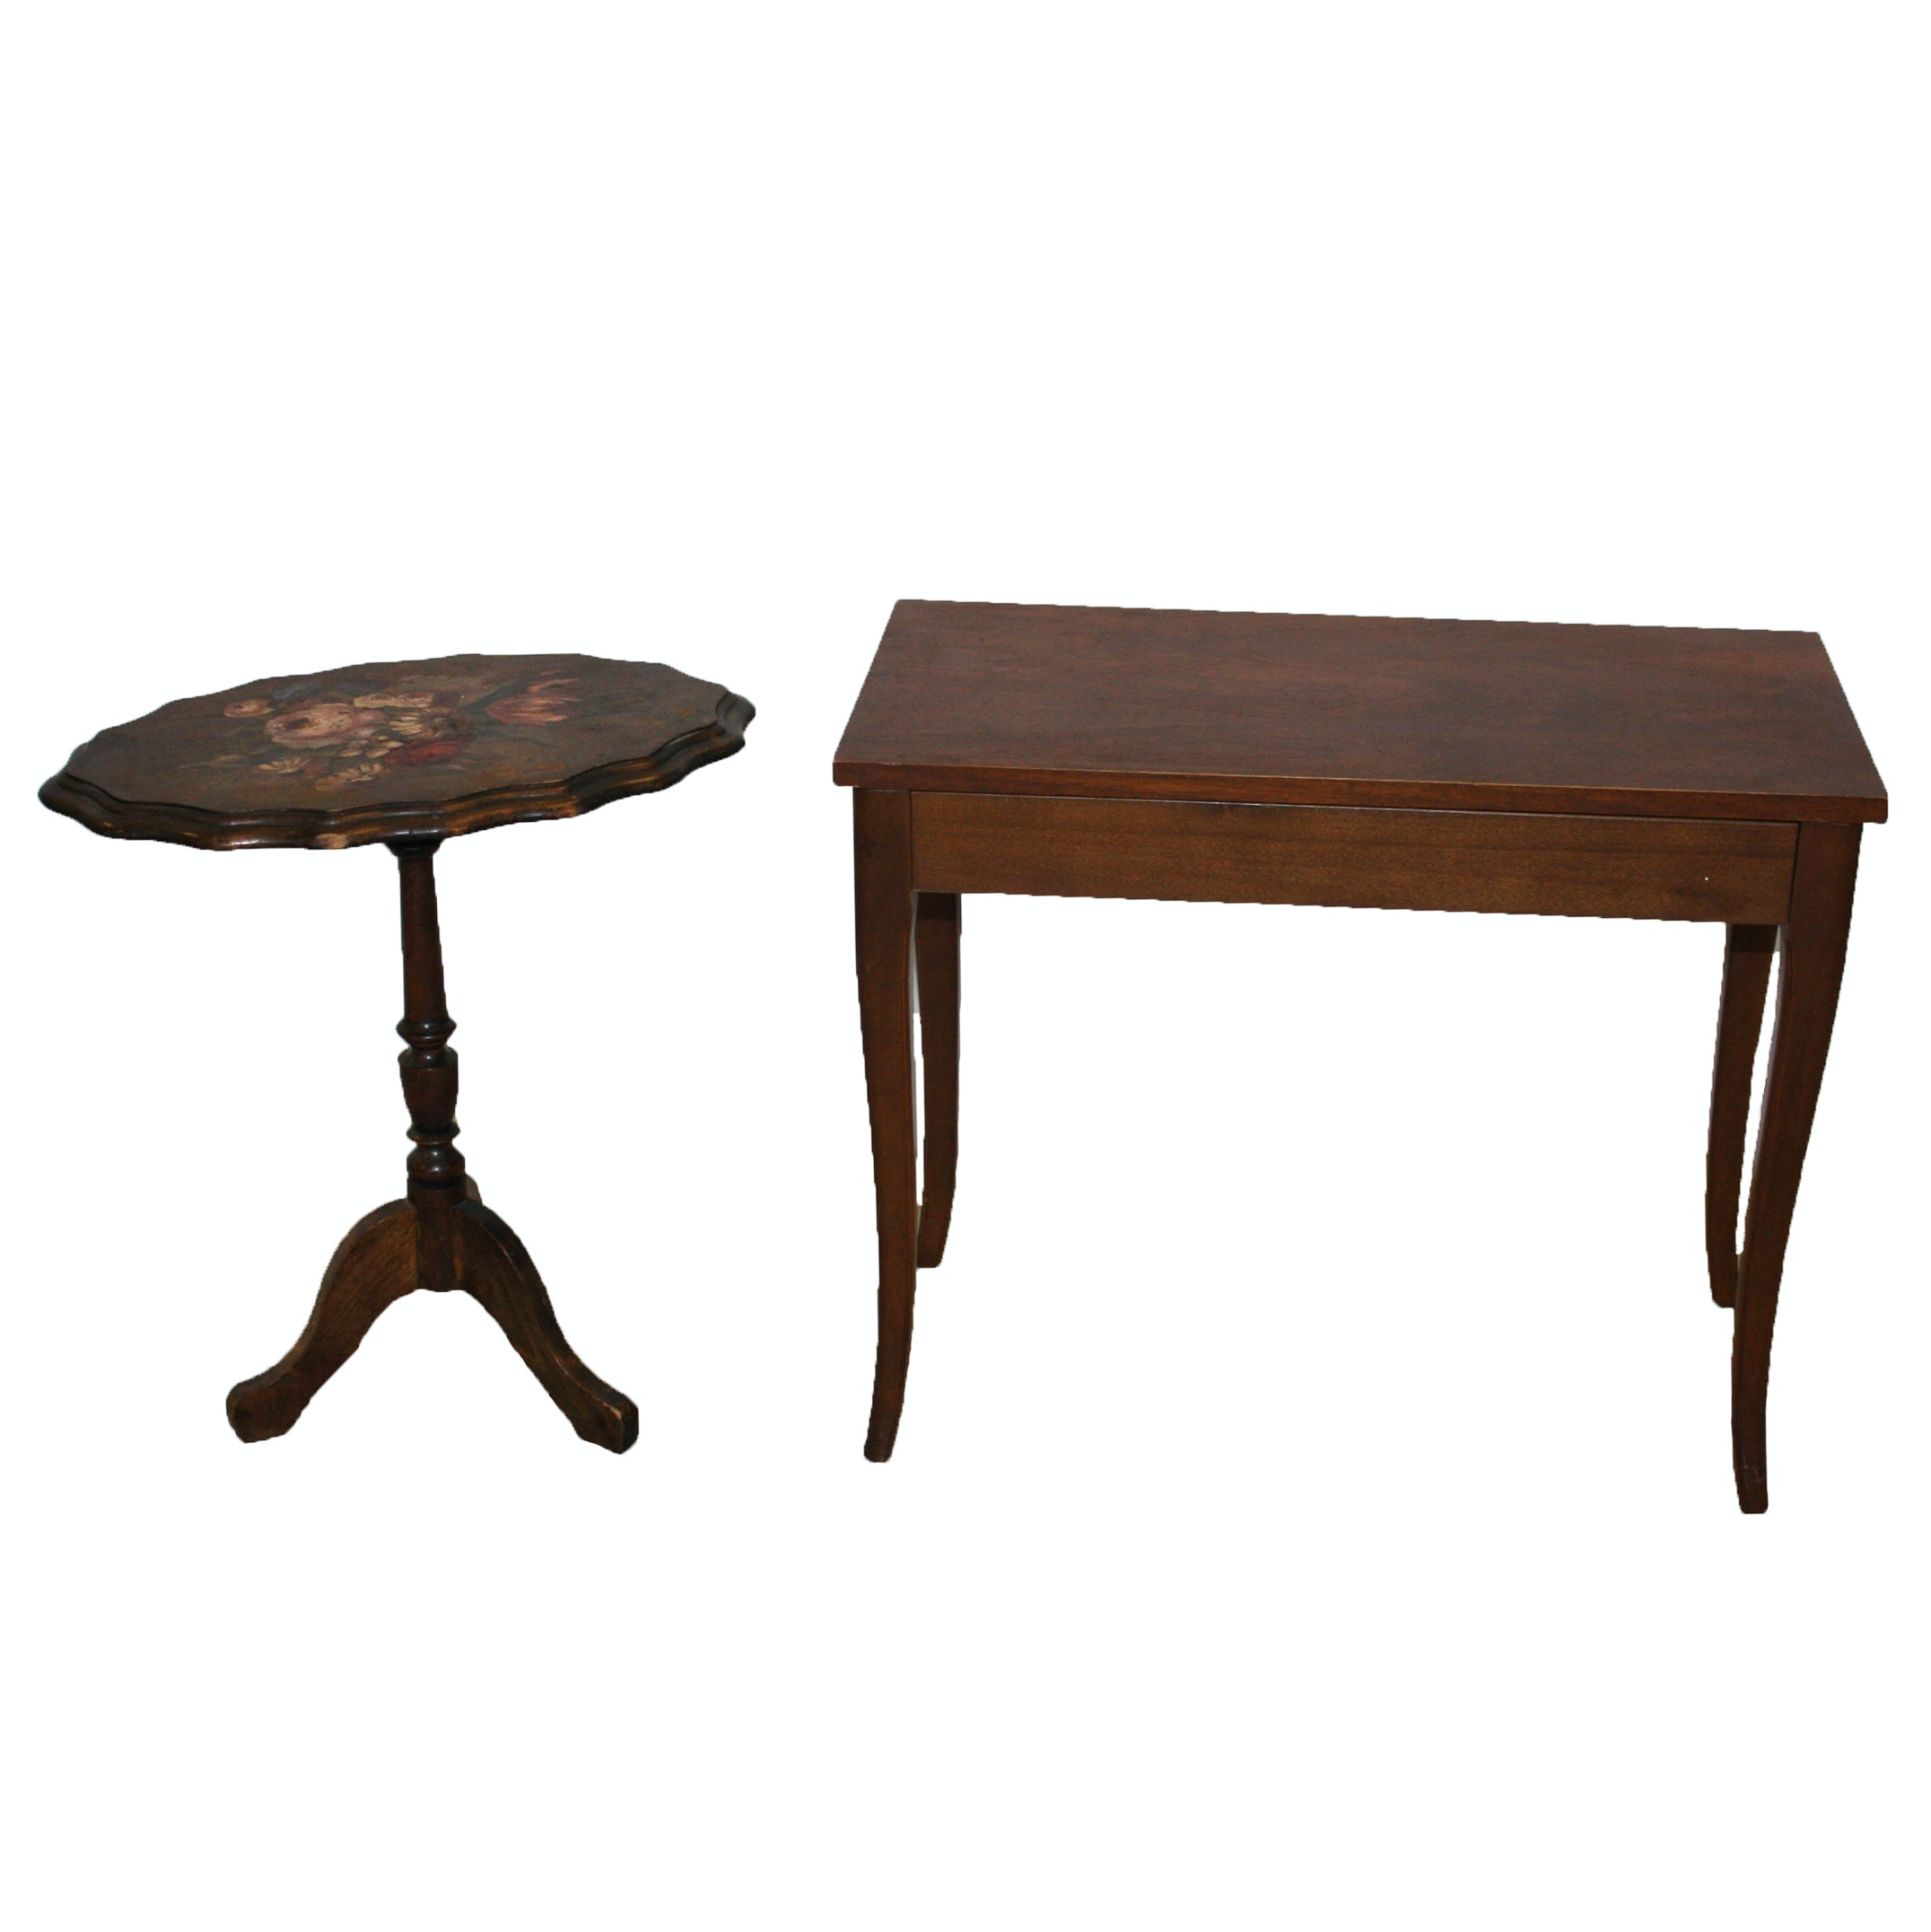 Hand-Painted Floral Tilt-Top Table and Walnut Piano Bench